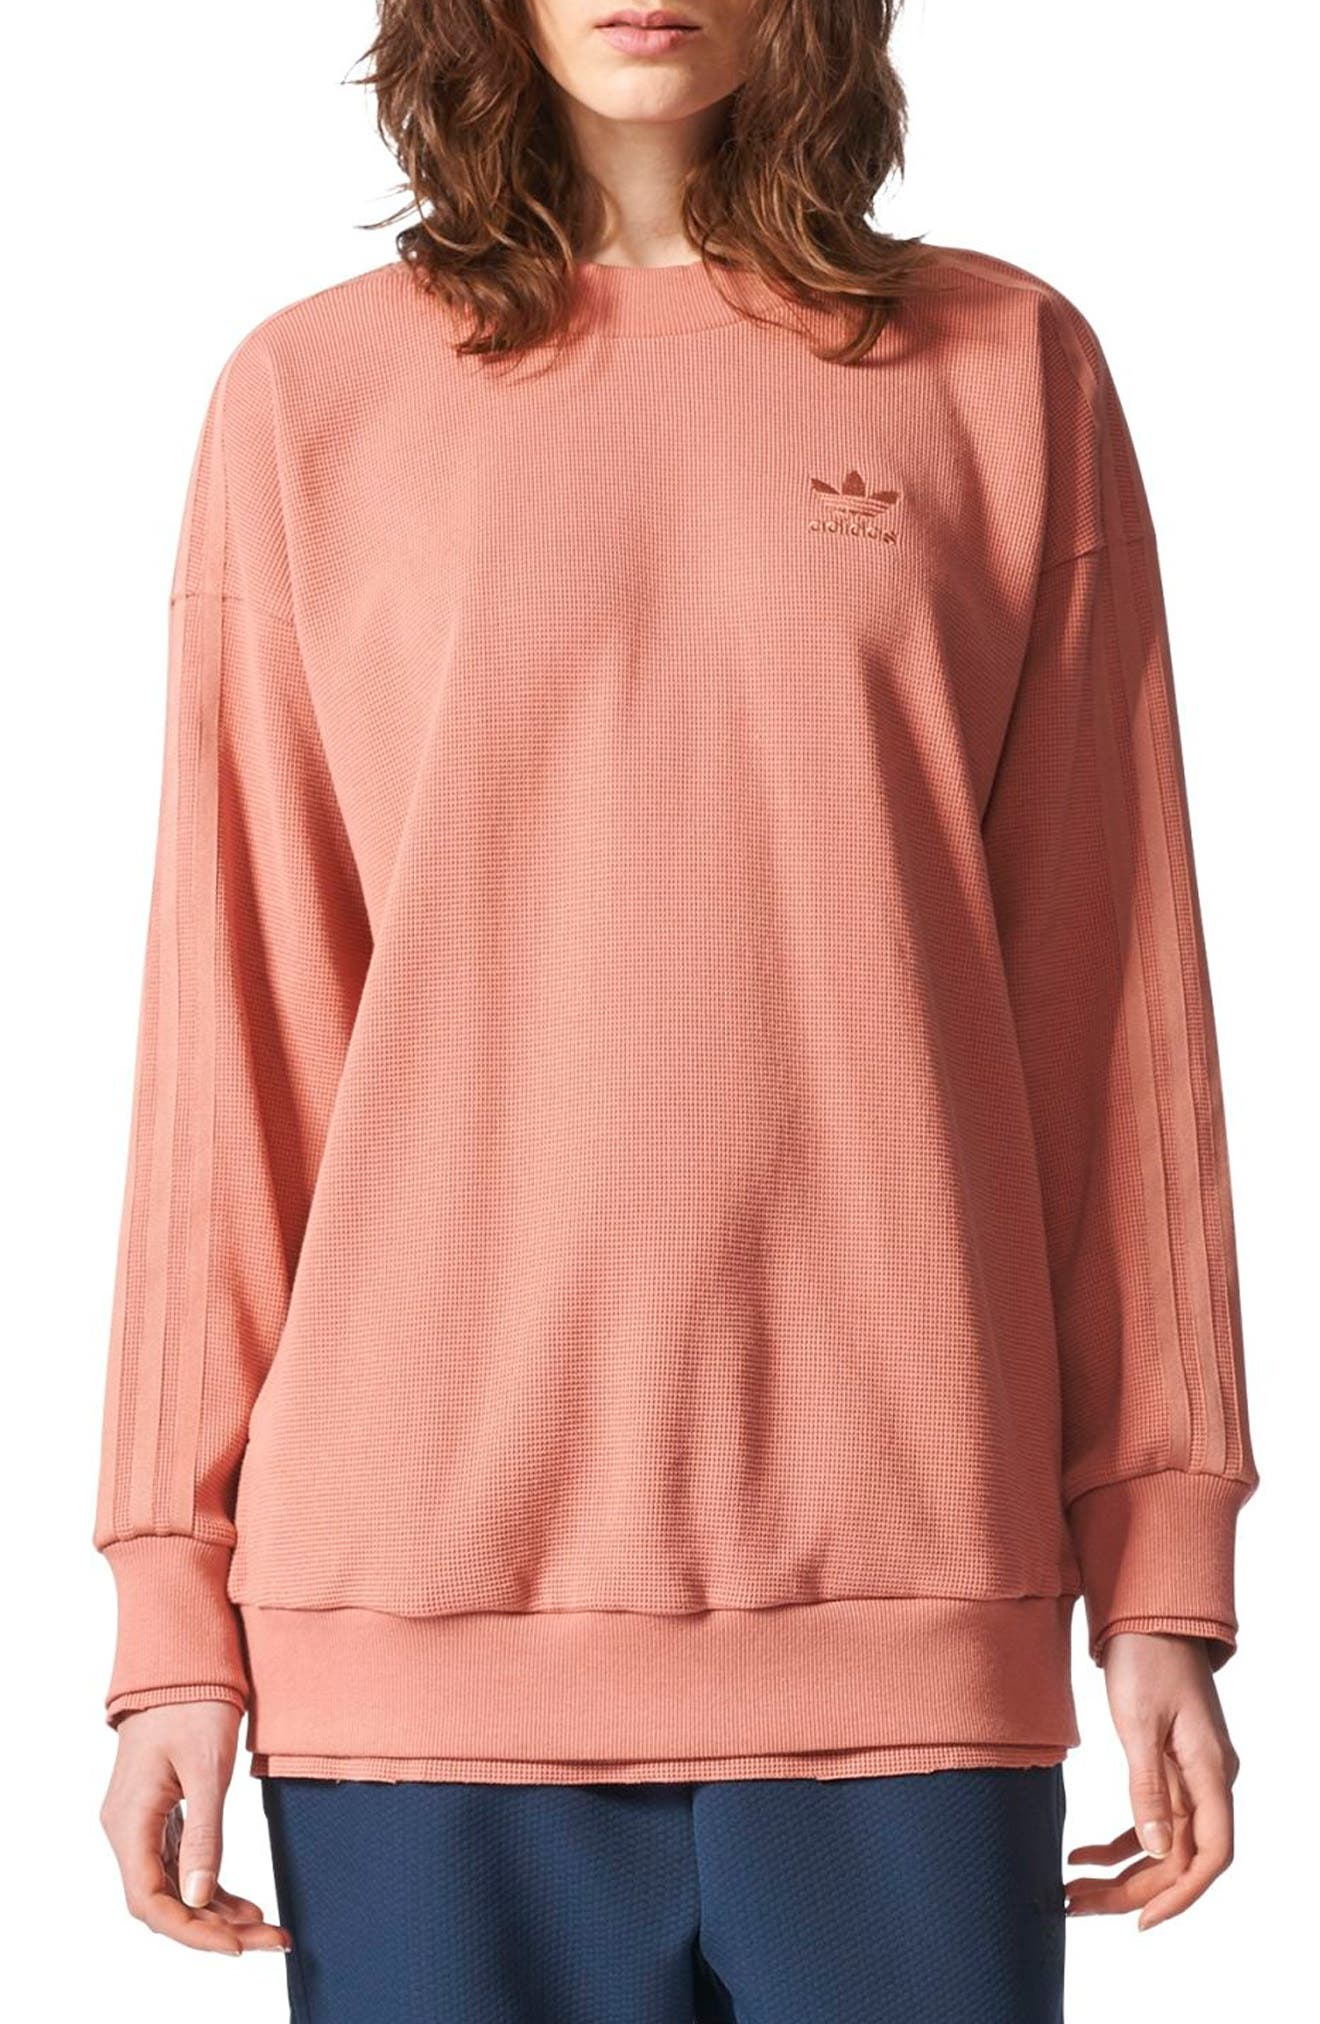 Originals Thermal Sweatshirt,                             Main thumbnail 1, color,